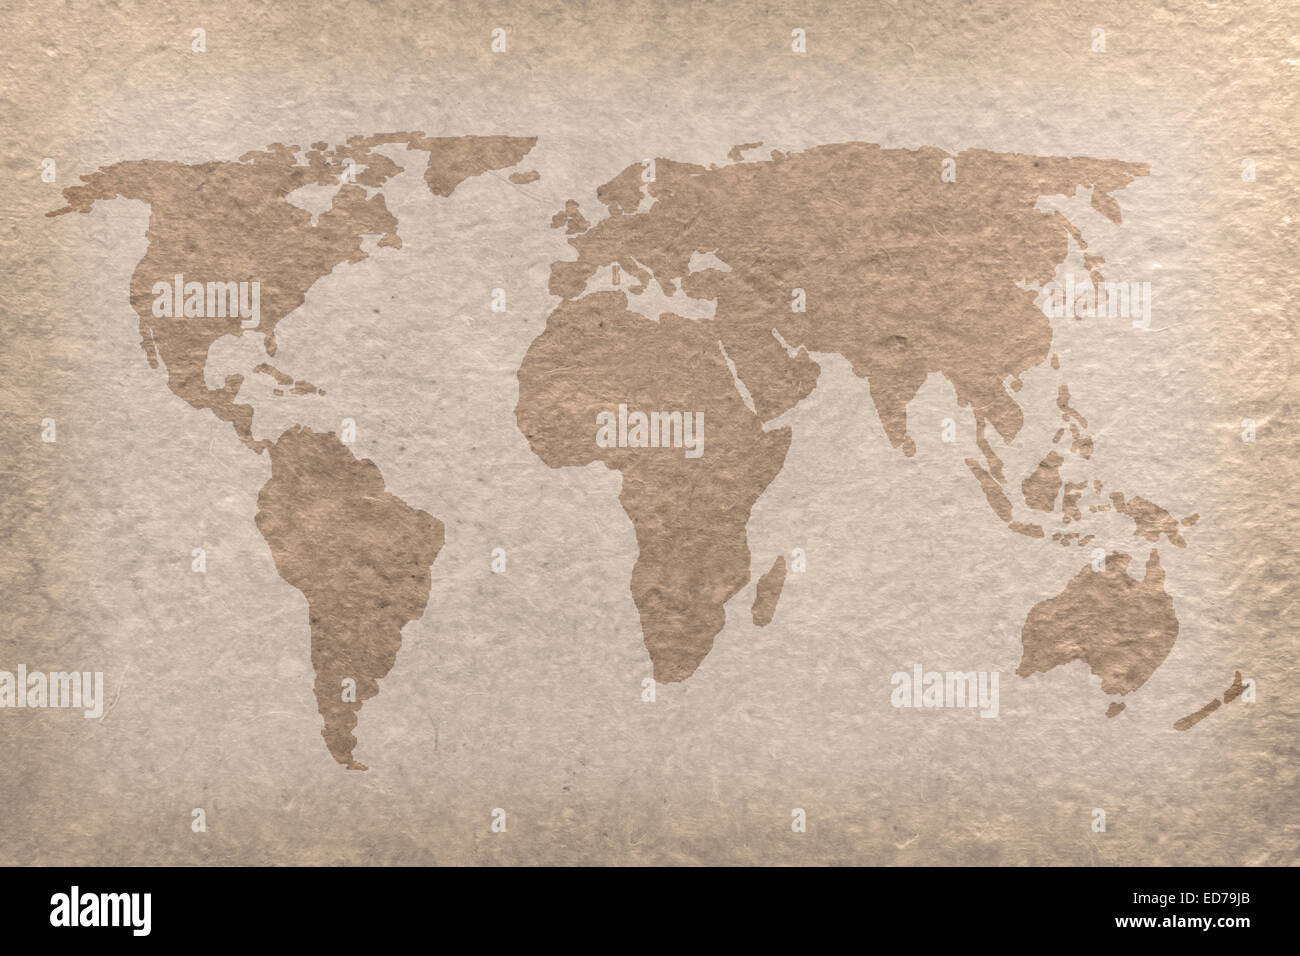 vintage world map on paper craft (map from NASA) - Stock Image